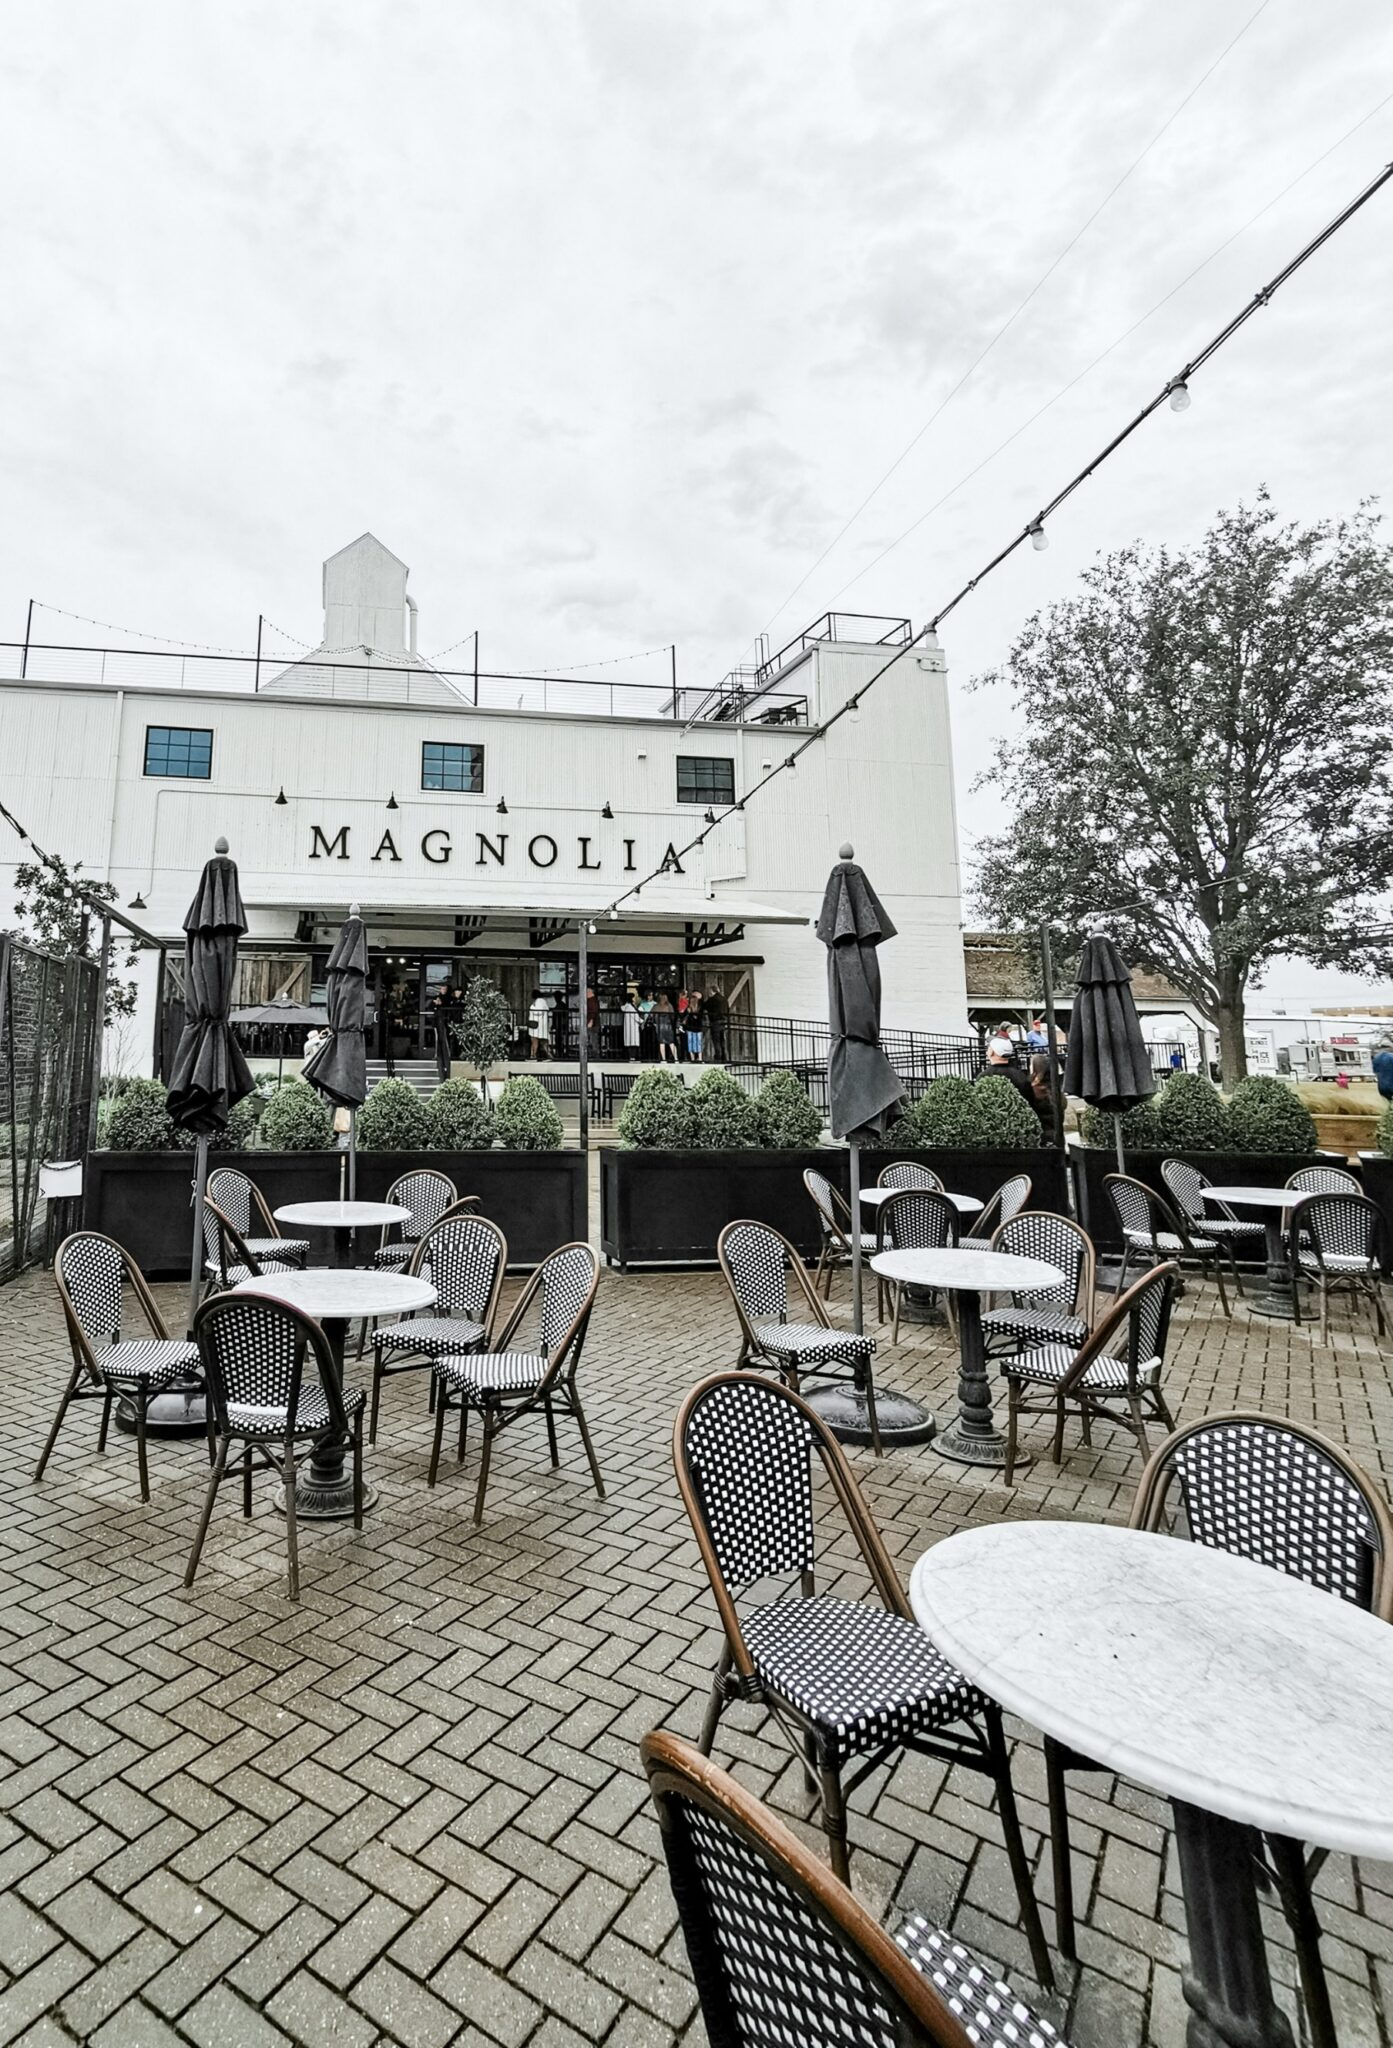 The Magnolia Market and Silos Baking Co. patio seating.